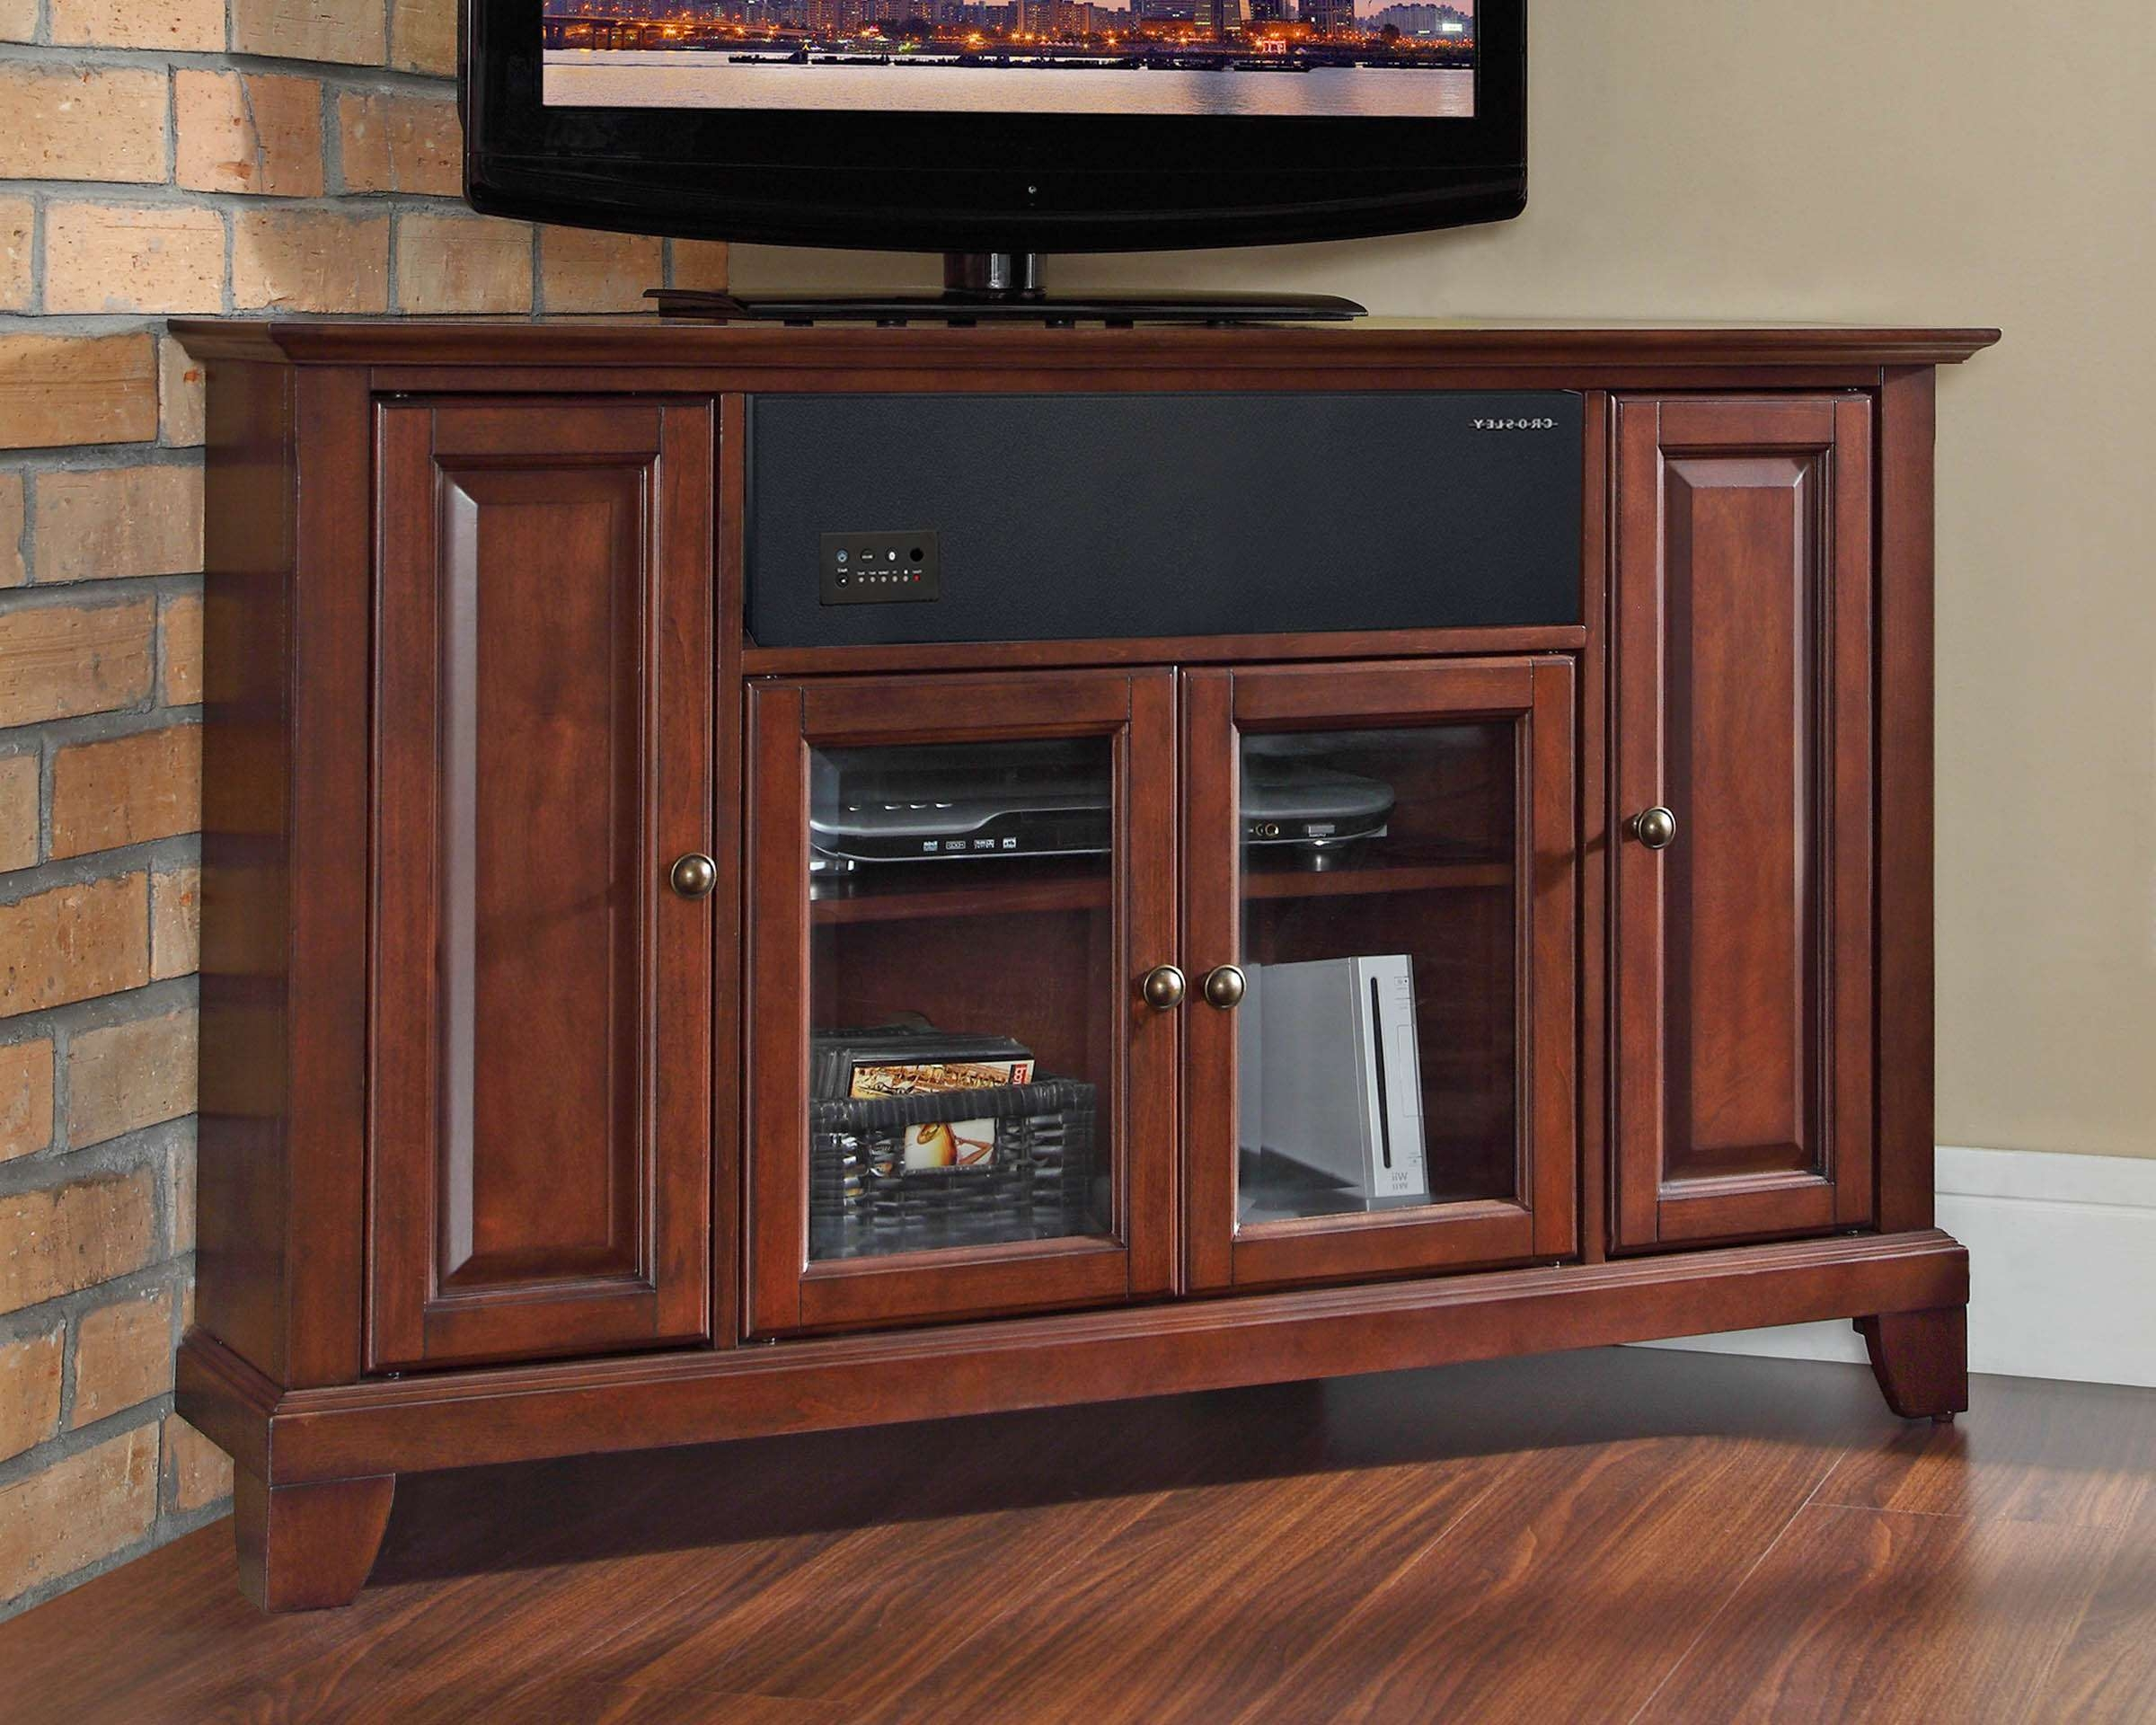 Crosley Furniture Newport 48 Inch Corner Aroundsound Tv Stand In With Regard To Mahogany Corner Tv Cabinets (View 7 of 20)